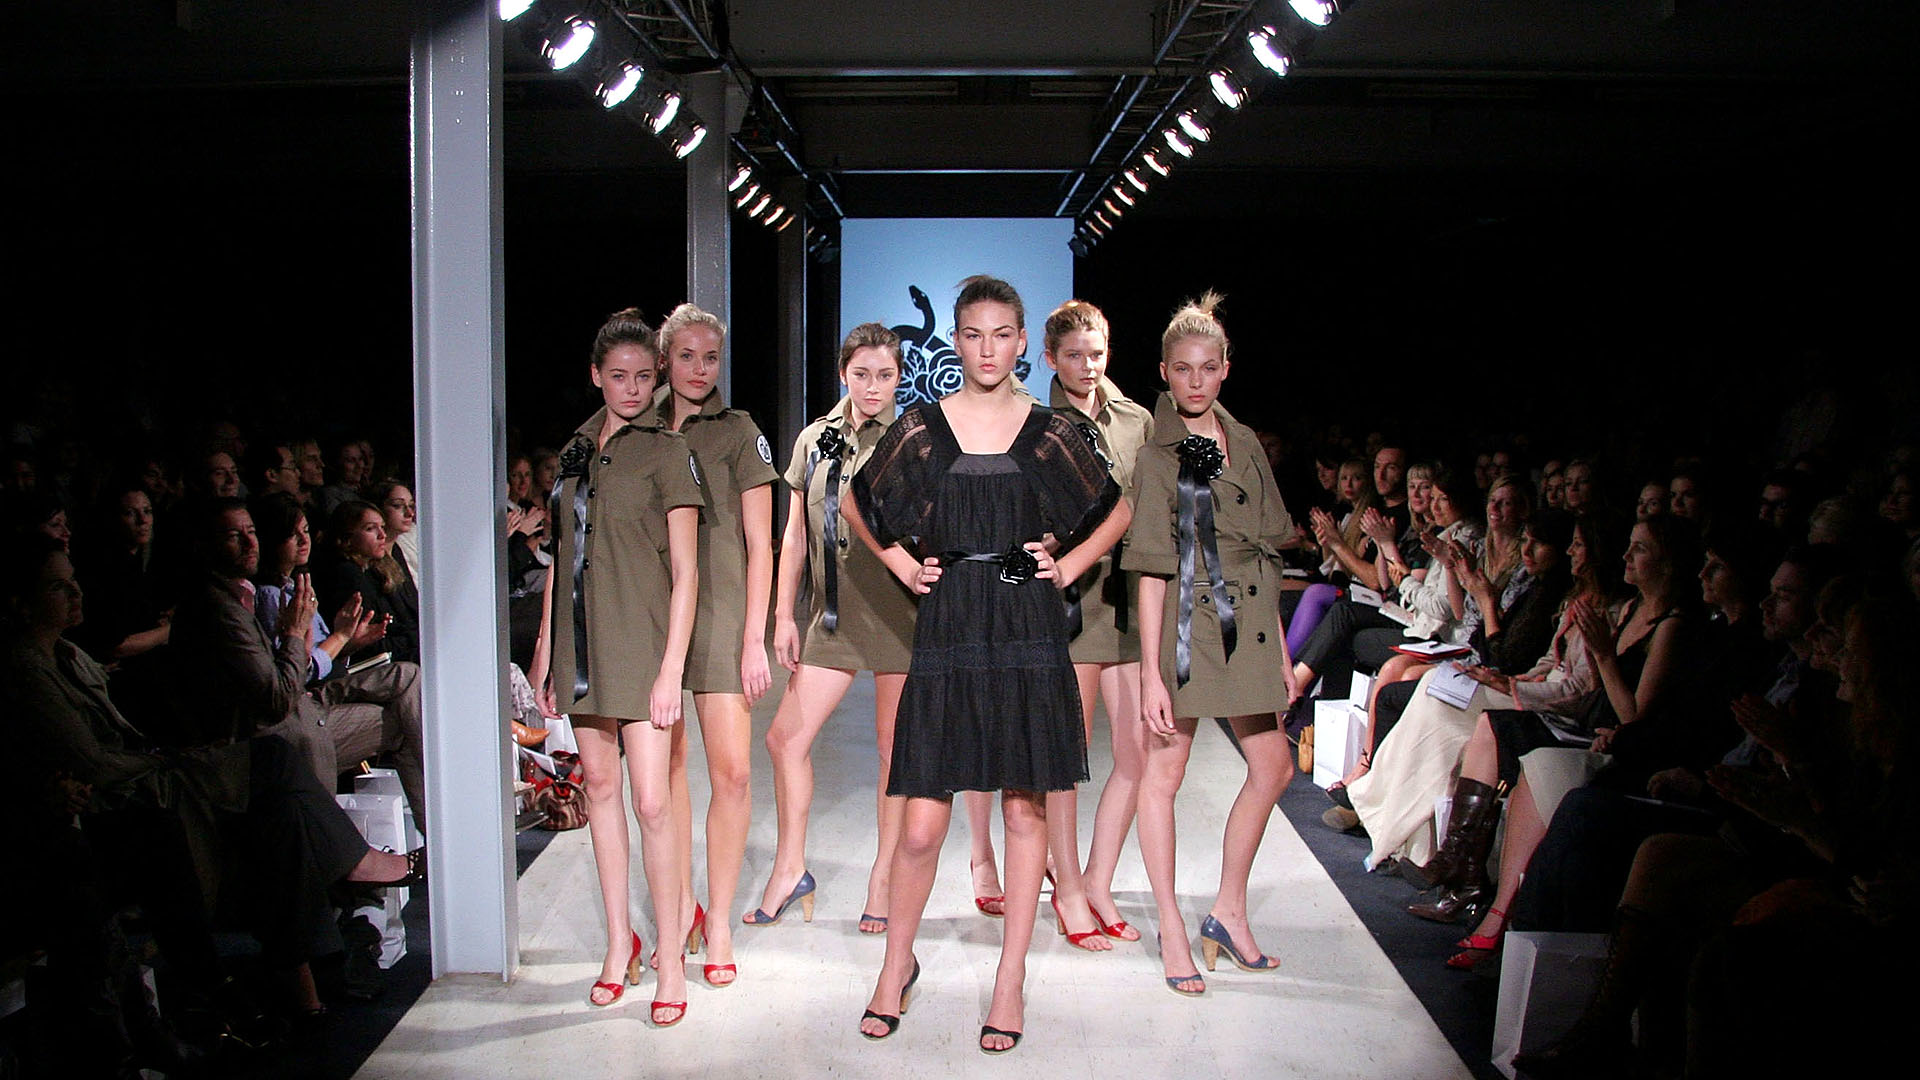 SYDNEY, NSW - APRIL 27:  Models walks the catwalk during the Lover Collection show at Mercedes Australian Fashion Week April 27, 2006 in Sydney, Australia.  (Photo by Stephane L'hostis/Getty Images)